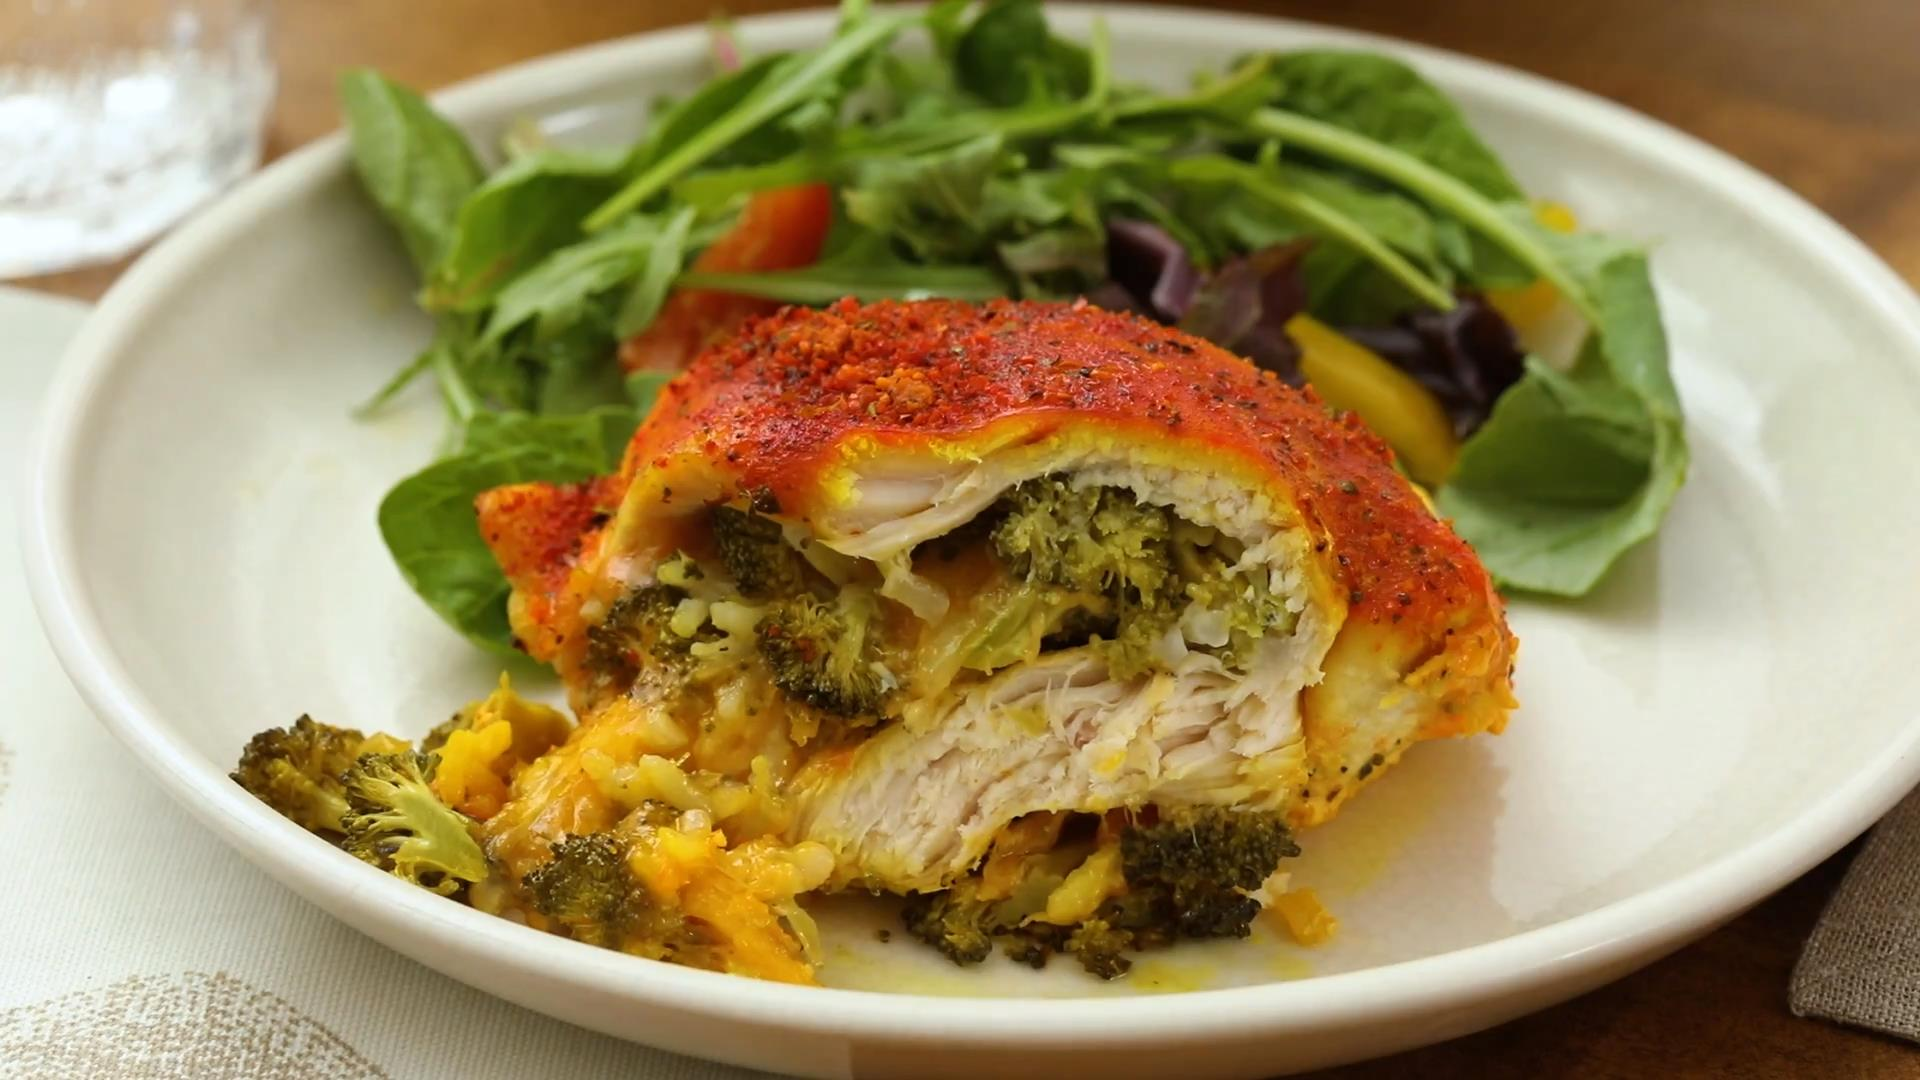 Cheesy Broccoli-Stuffed Chicken Breasts